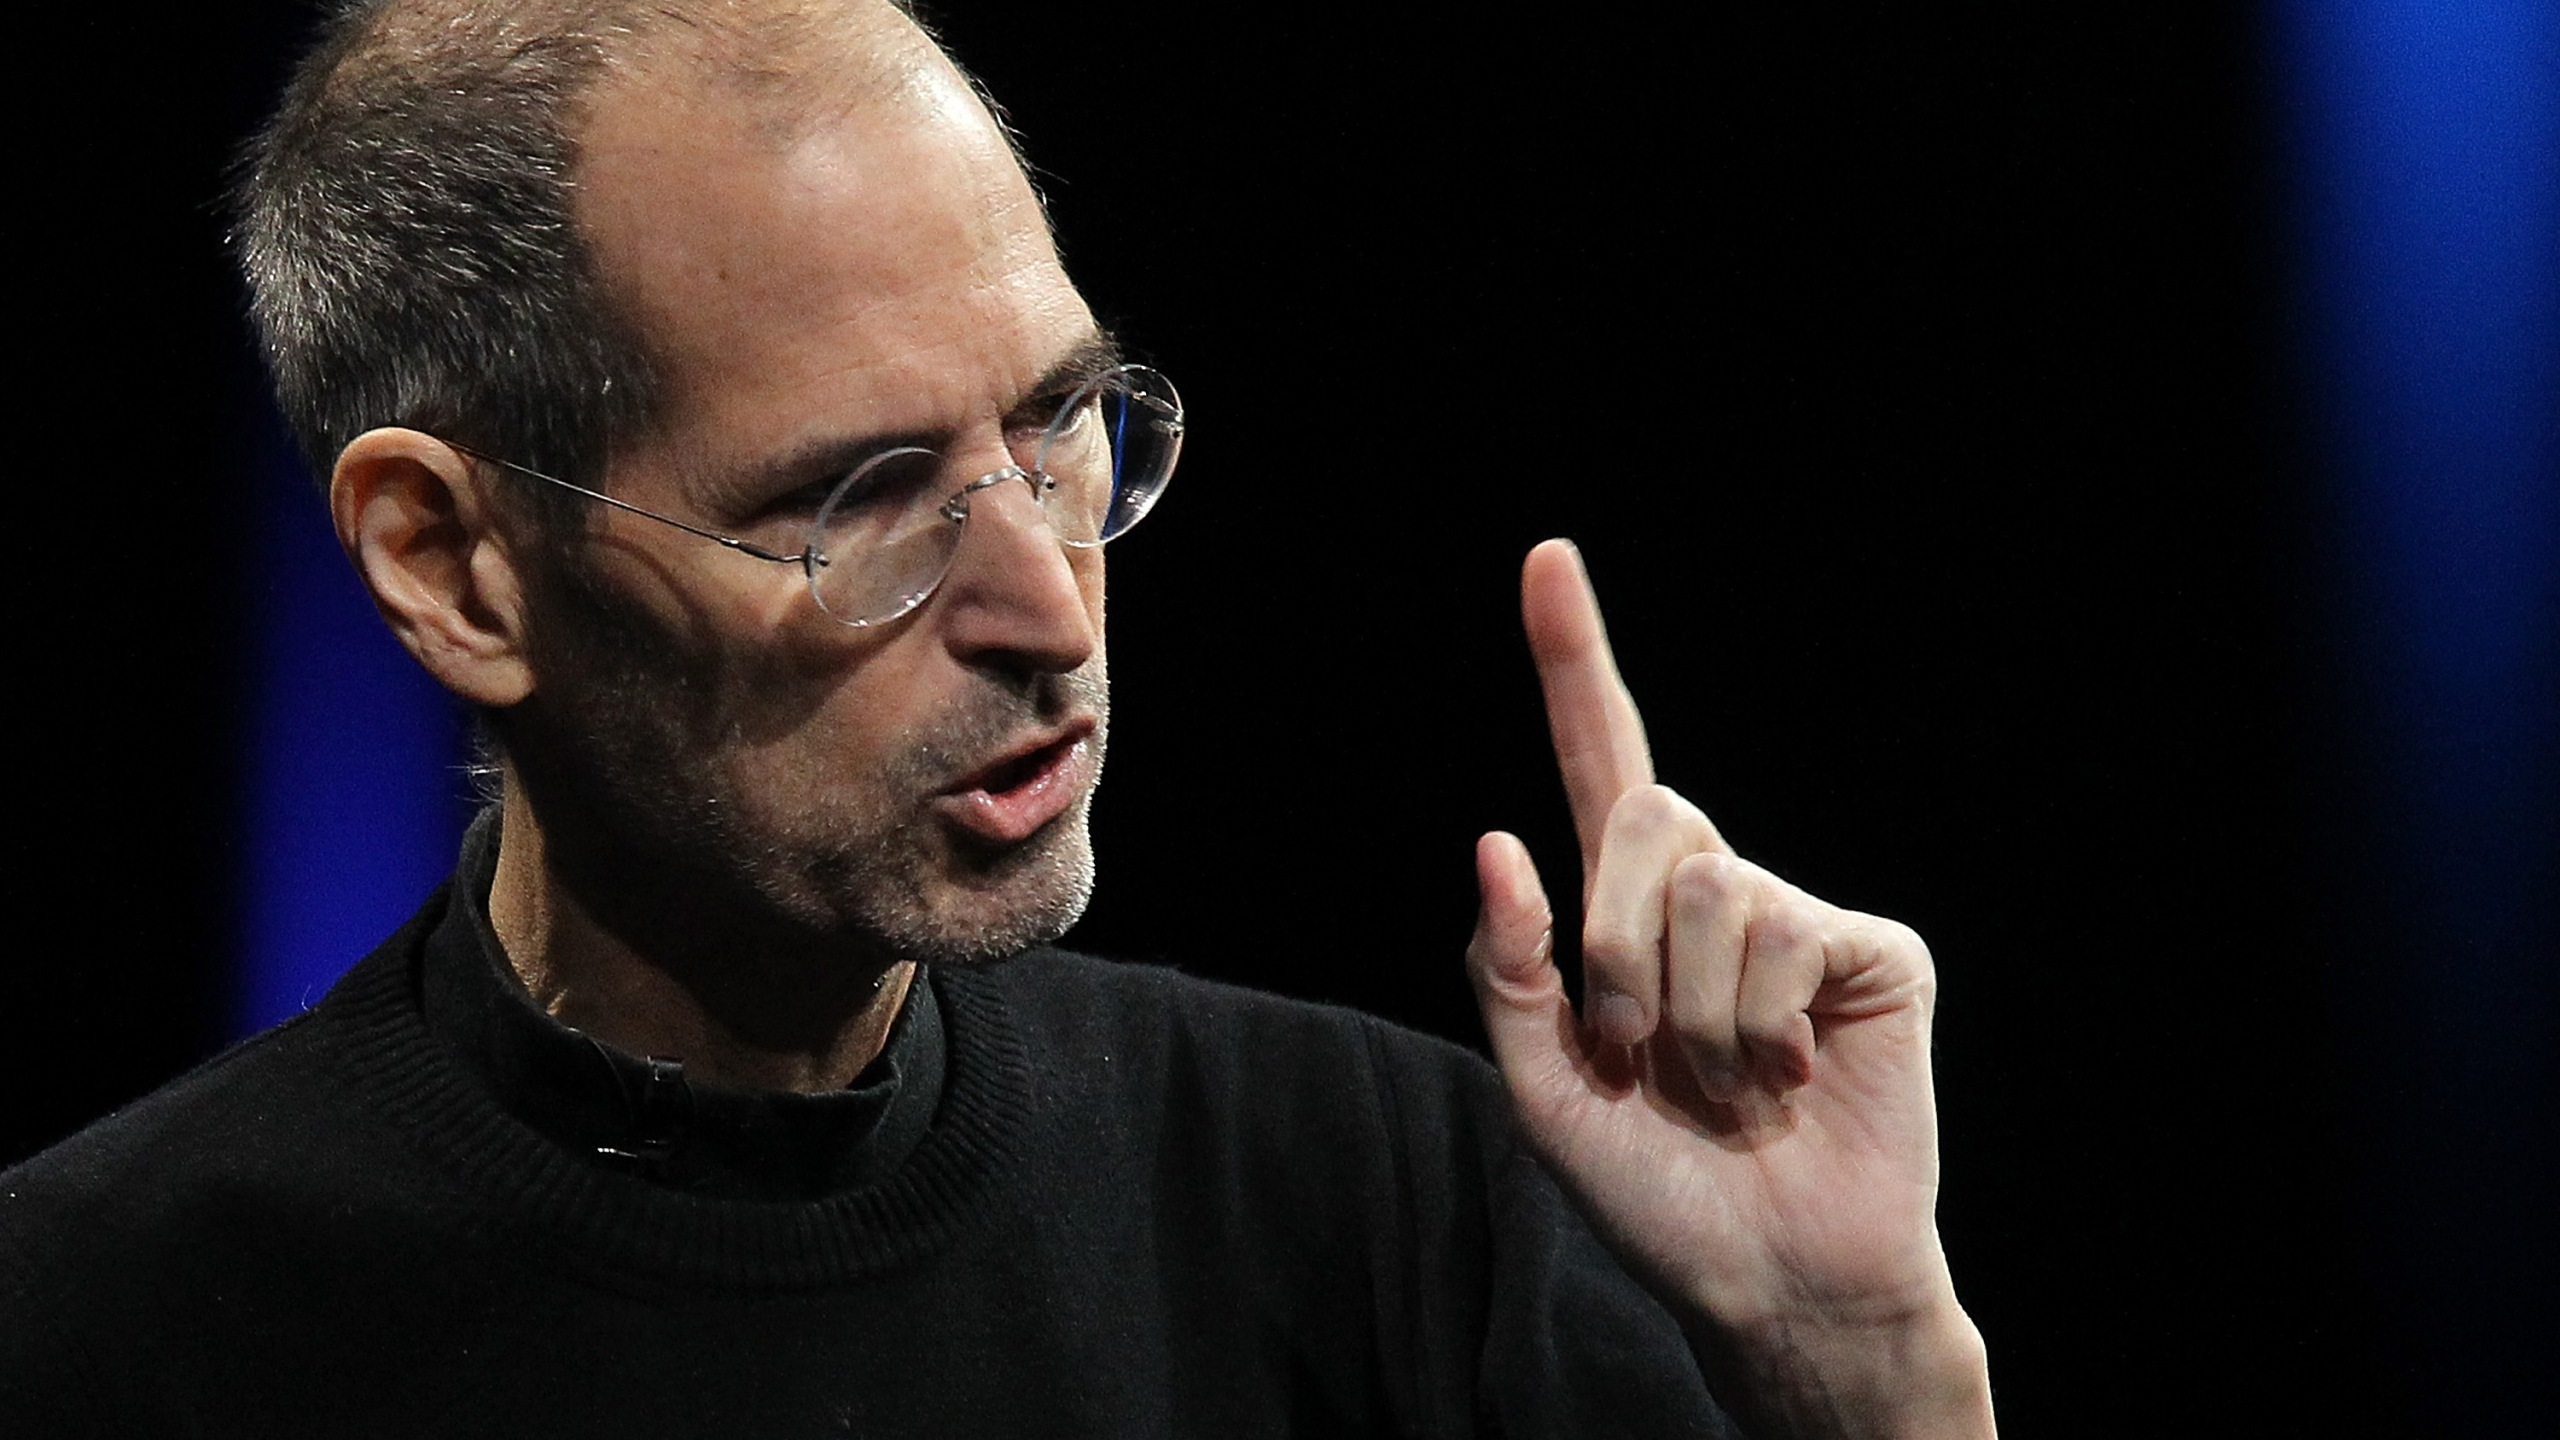 Apple CEO Steve Jobs in 2011. (Photo: Justin Sullivan/Getty Images)